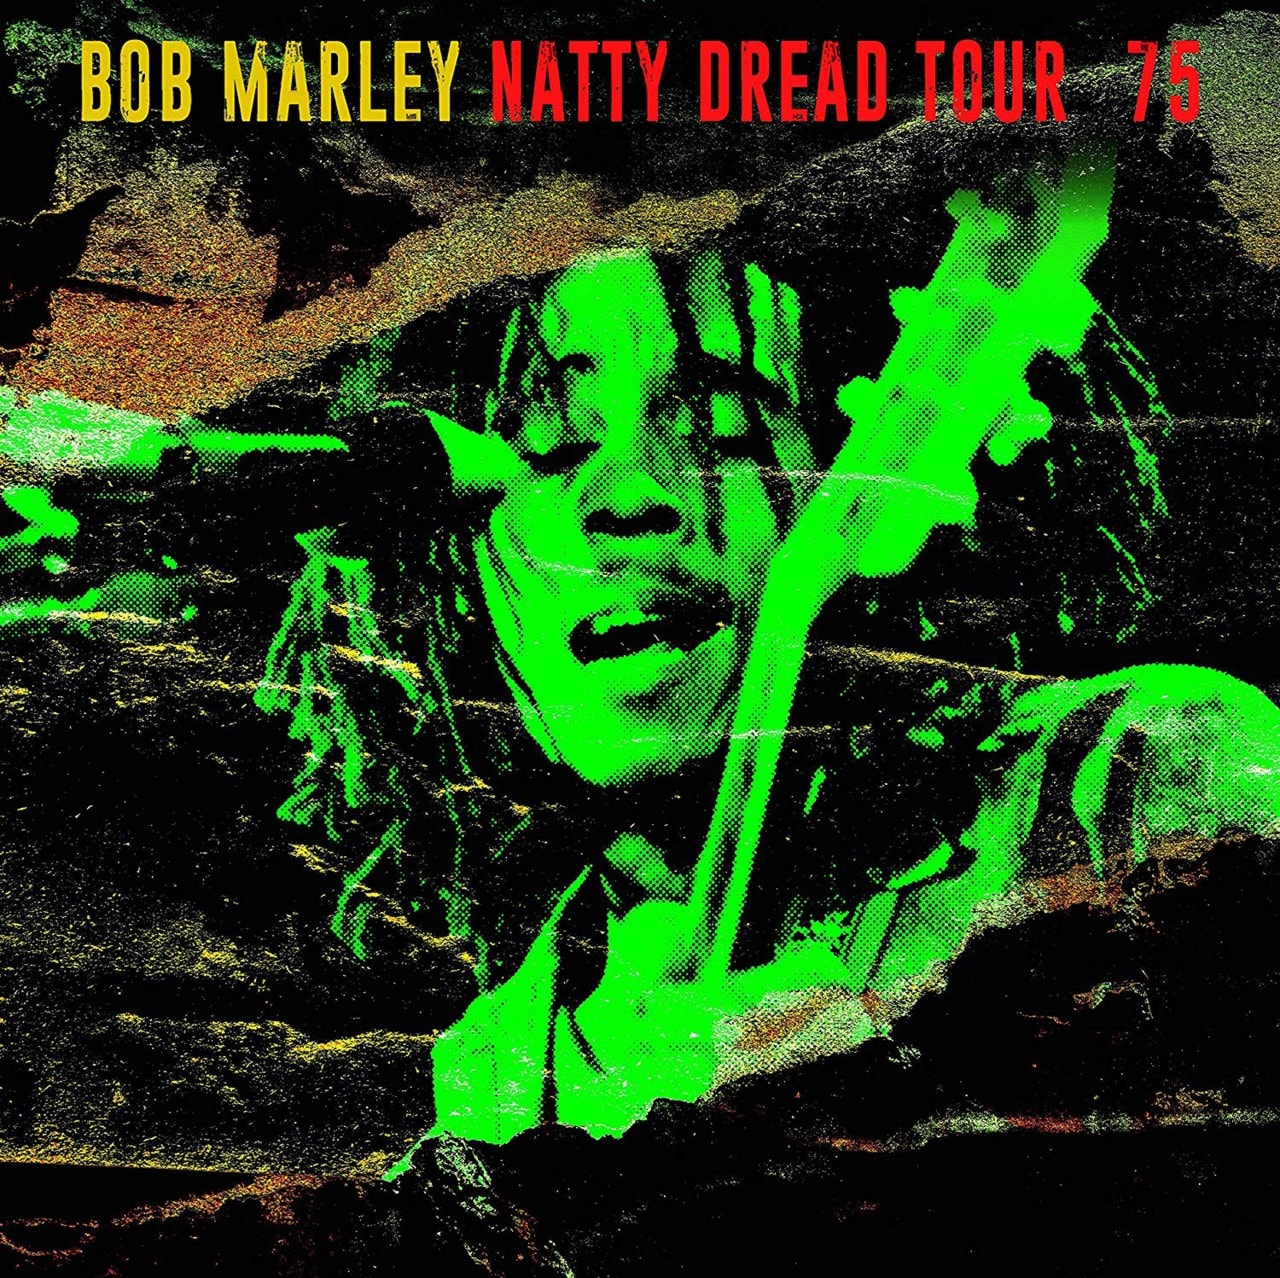 Natty Dread Tour '75 - 1